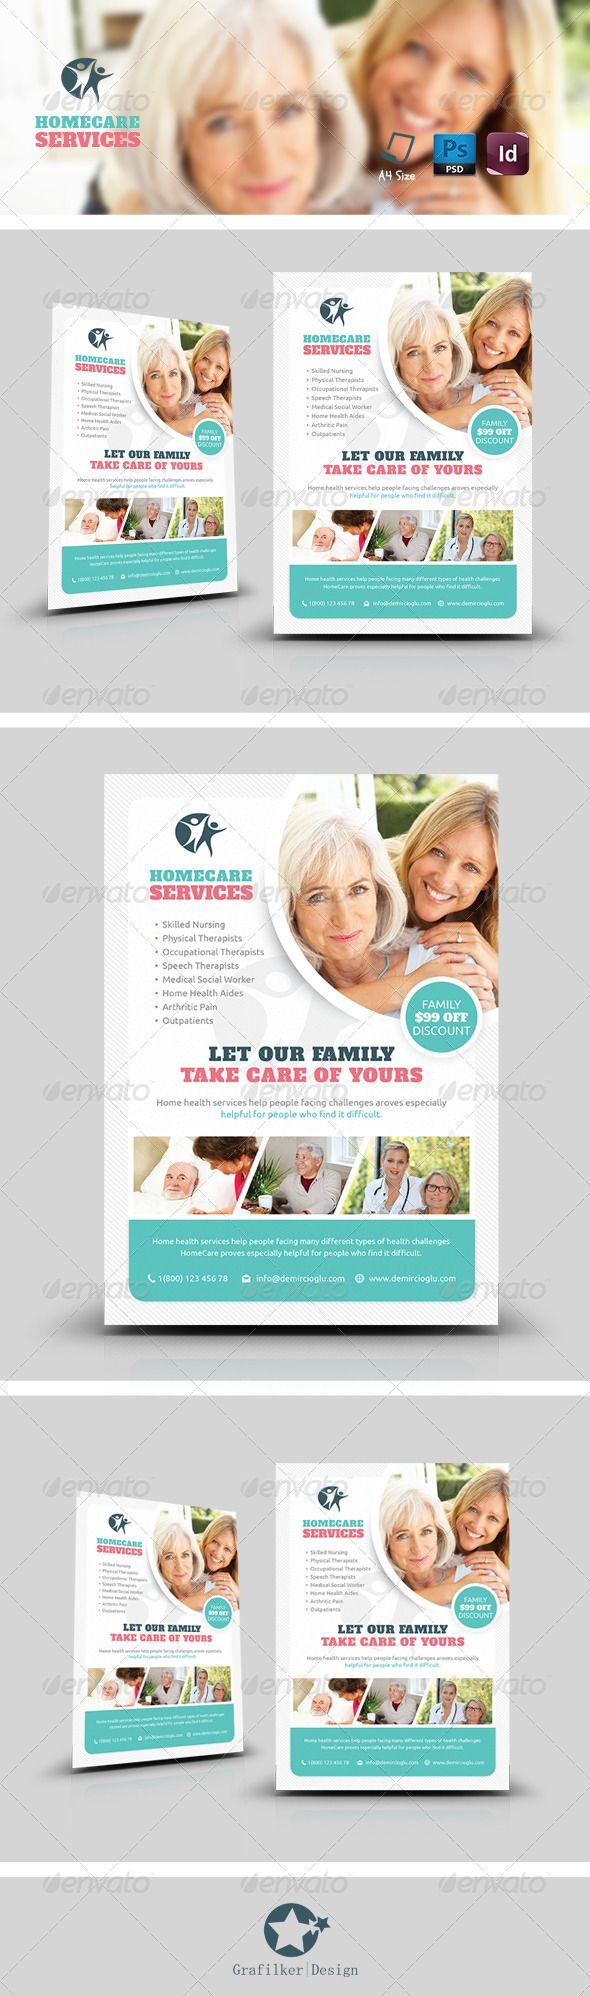 Home Care Flyer Templates Meal Preparation Flyer Template And - Home care brochure template